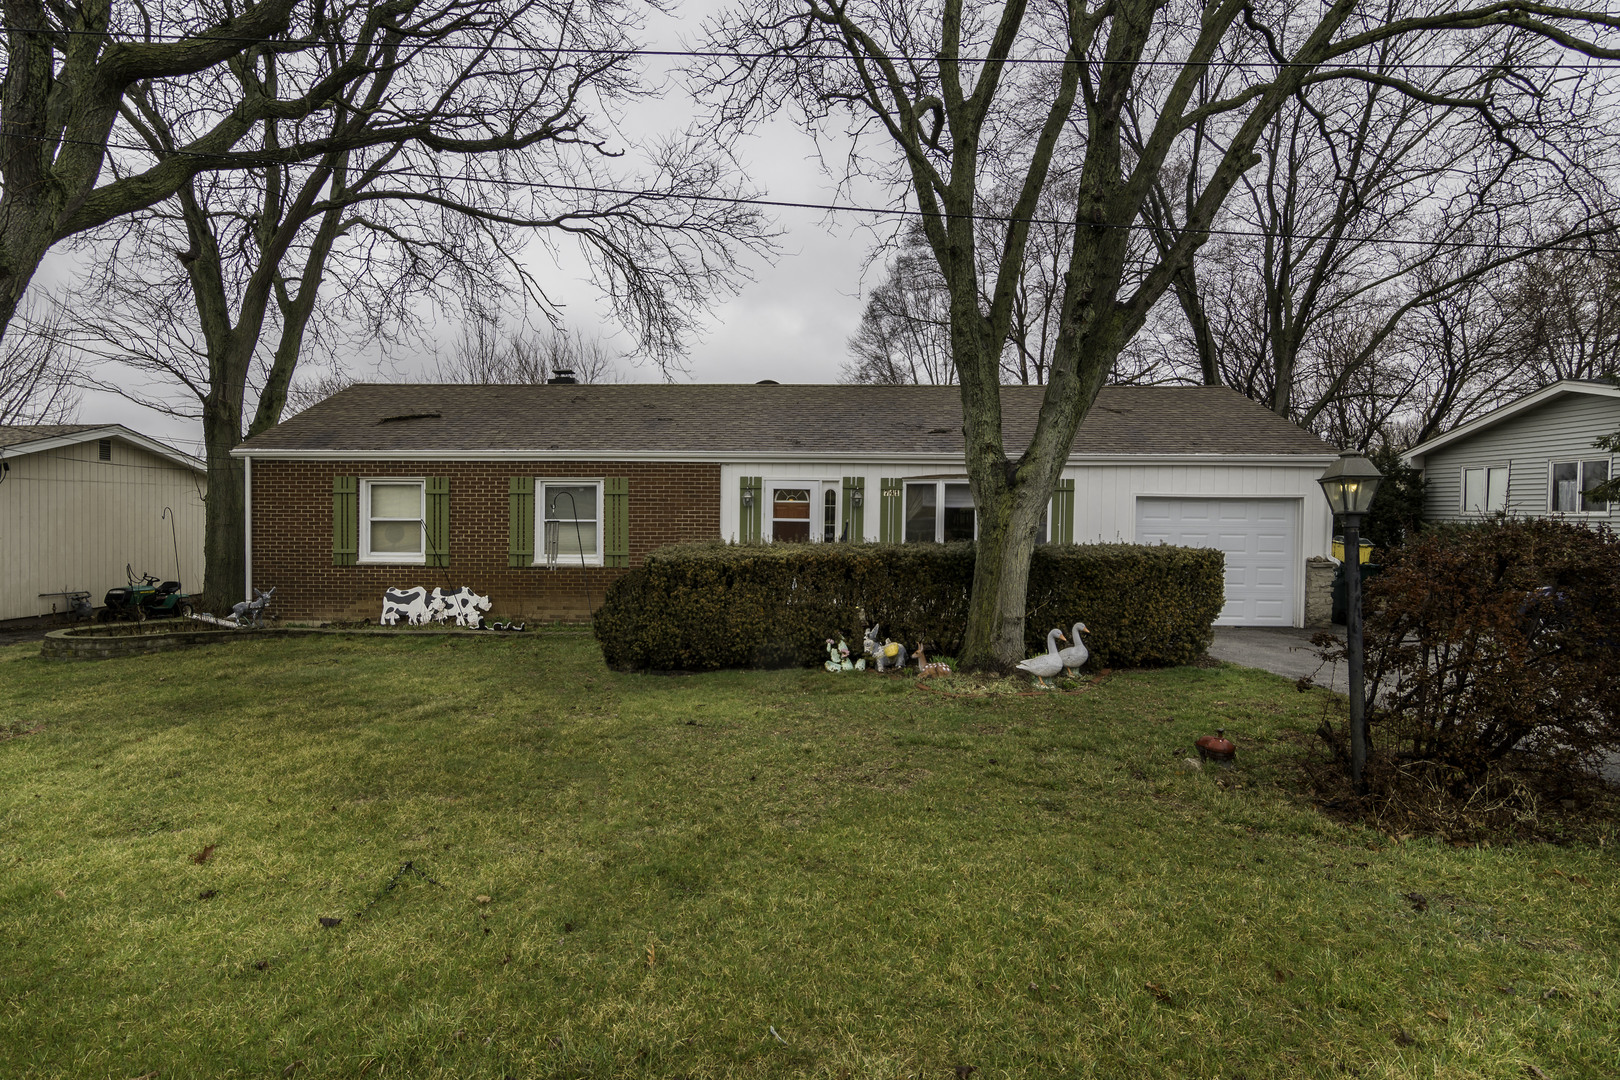 741 Pine Street, Batavia in Kane County, IL 60510 Home for Sale